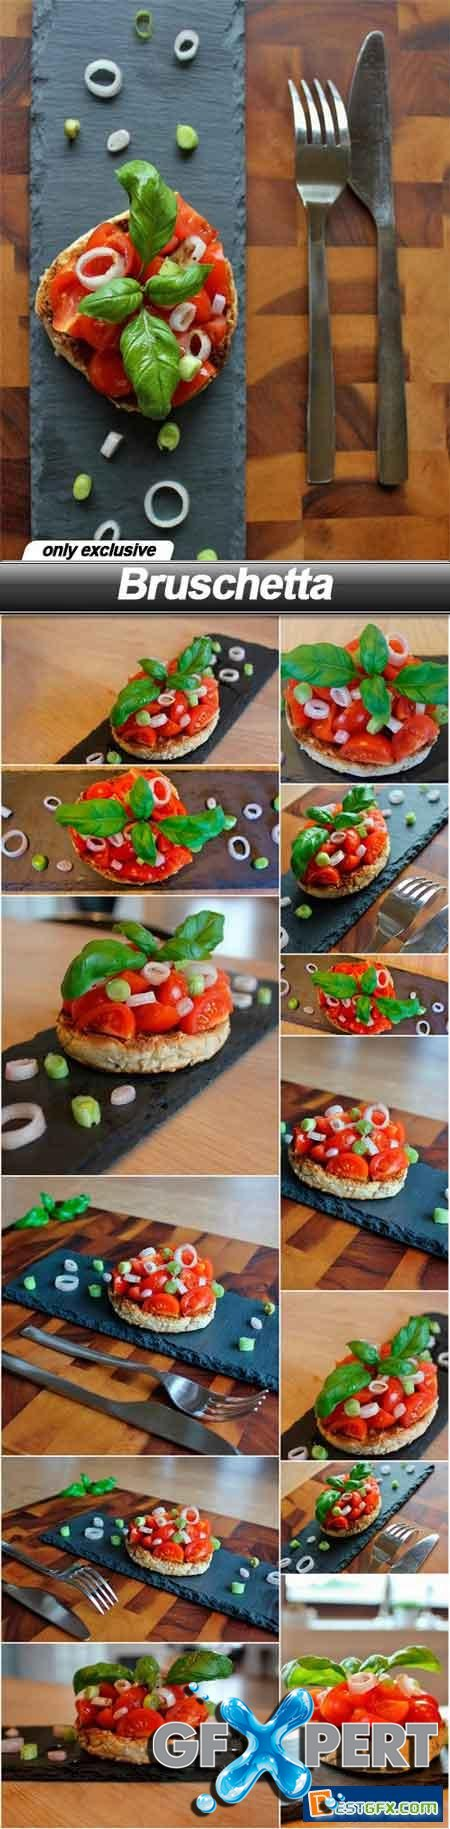 Bruschetta - 14 UHQ JPEG